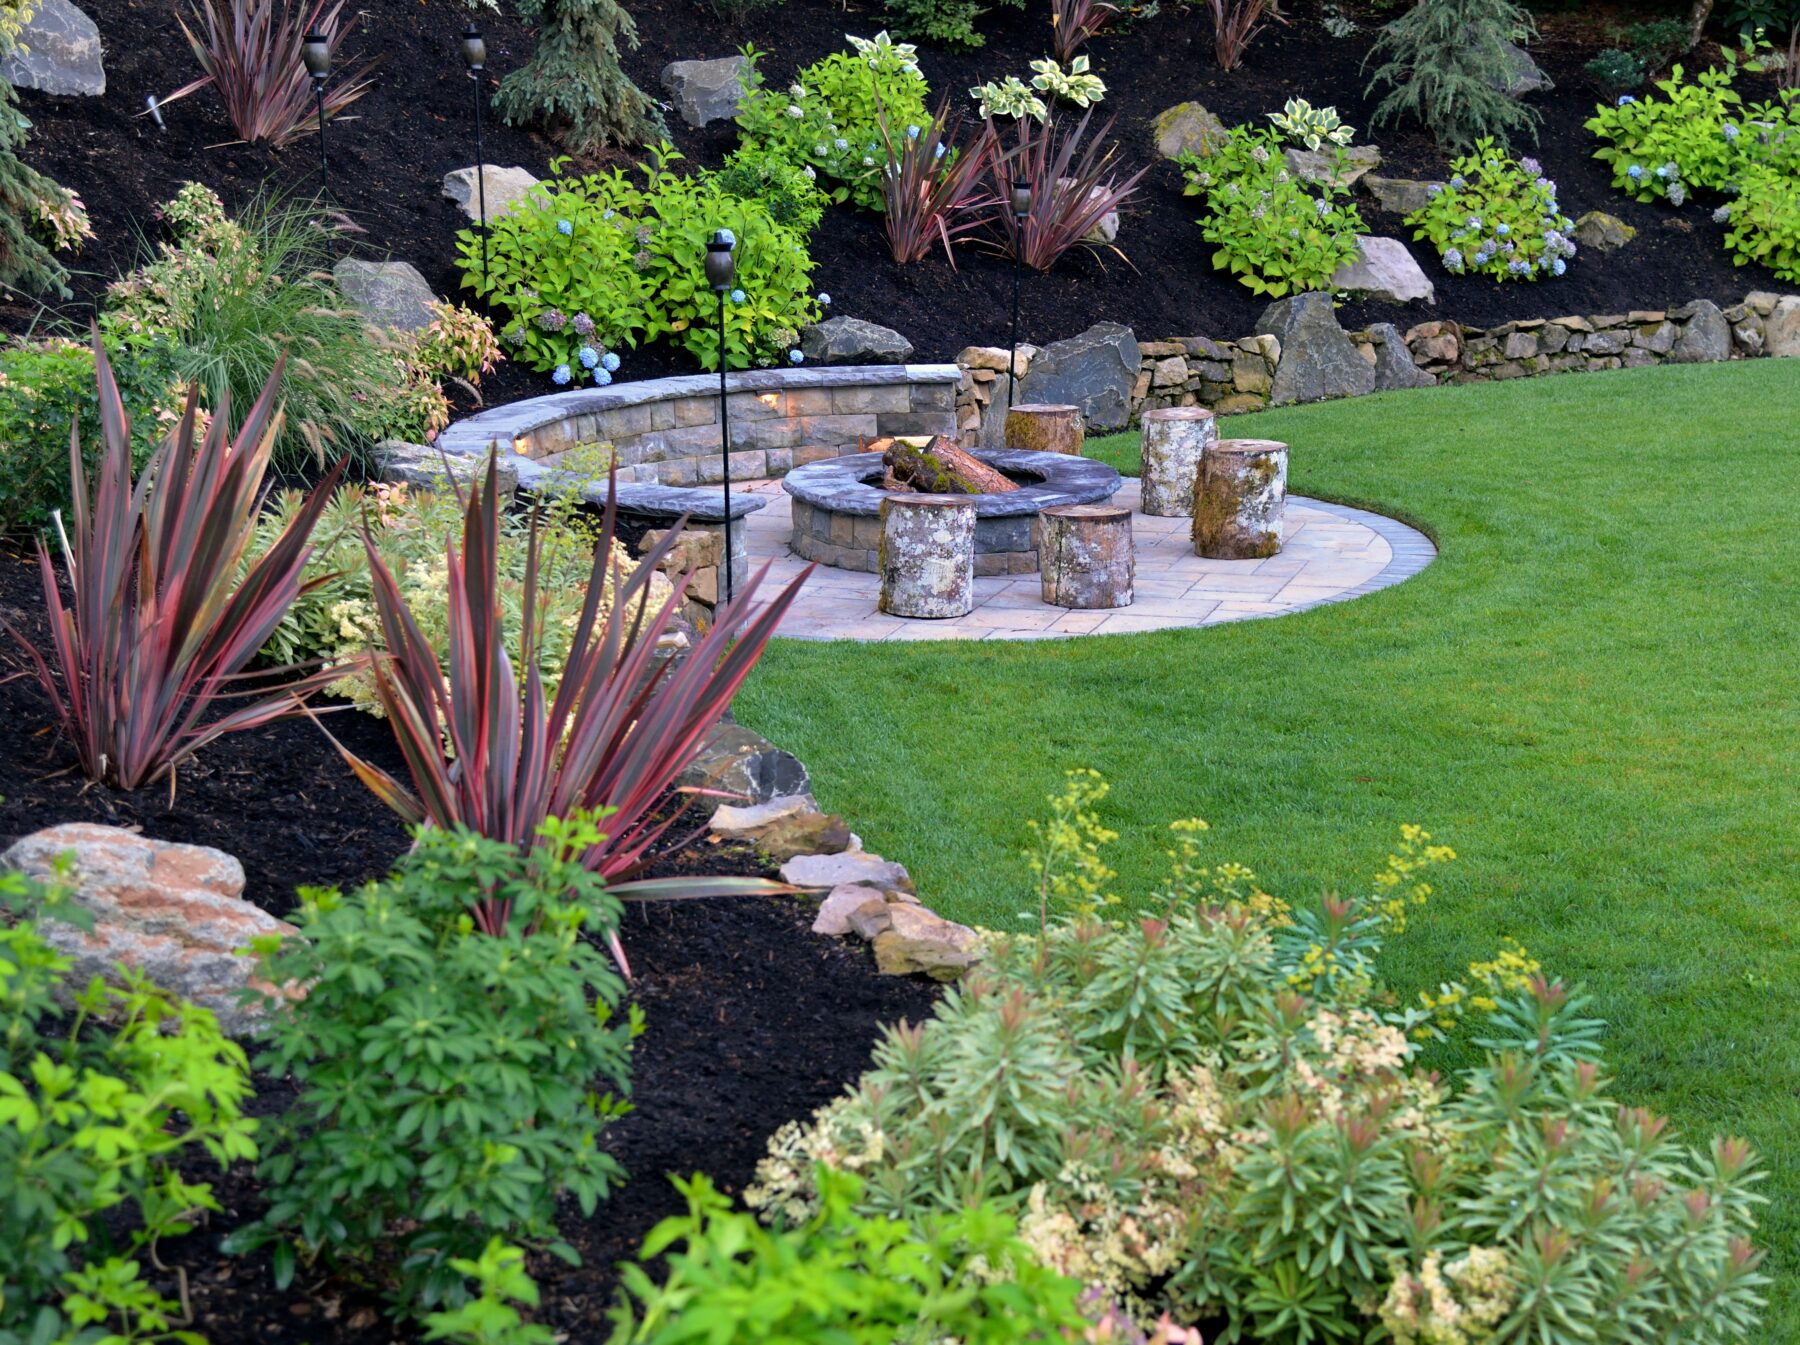 An example of Gladstone landscape design and landscape construction work